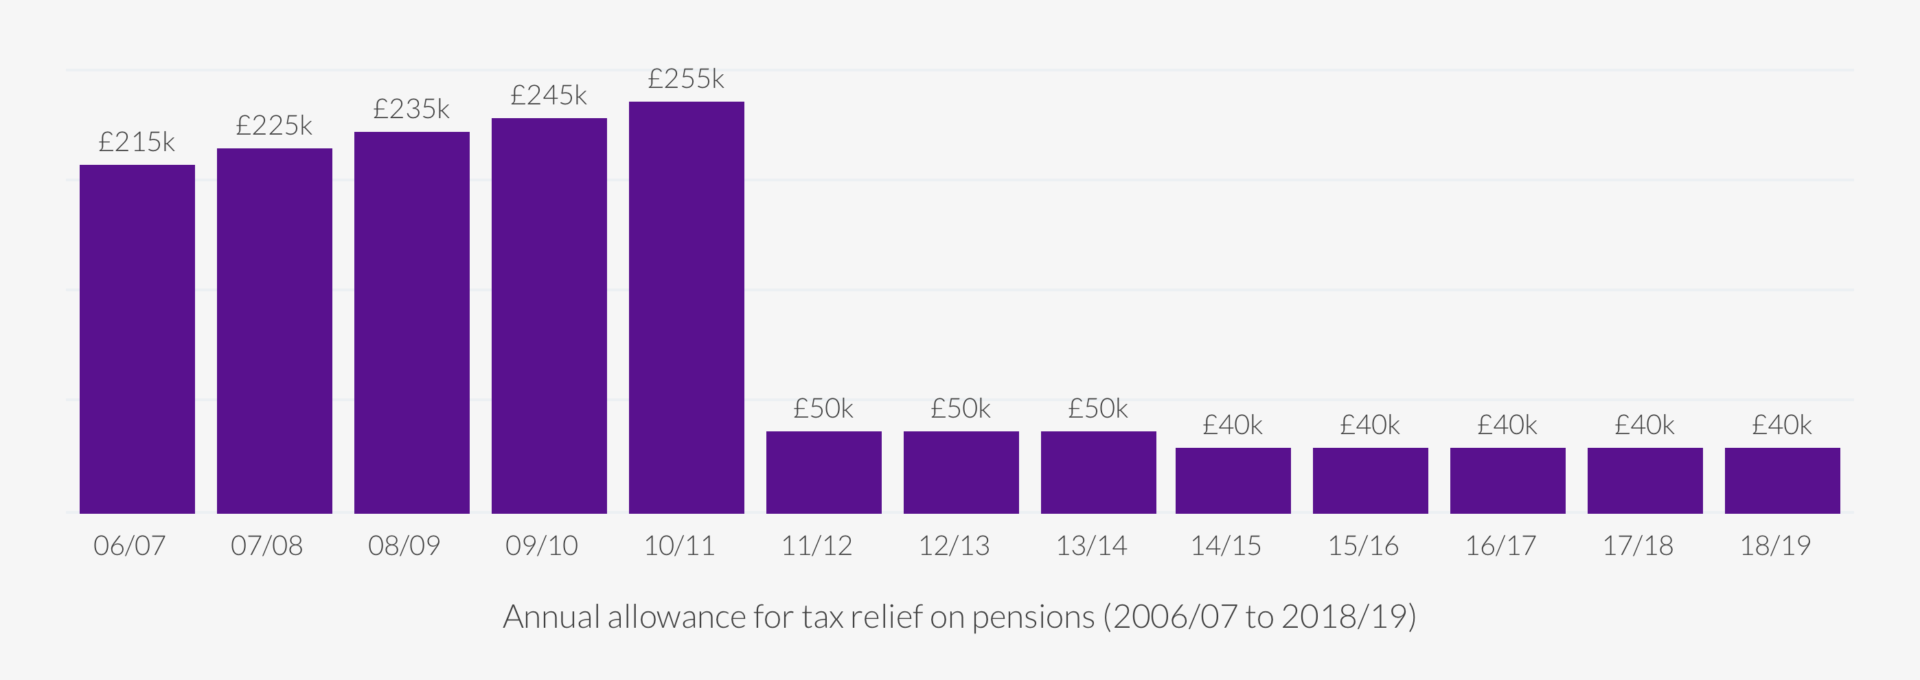 Personal Pensions 2